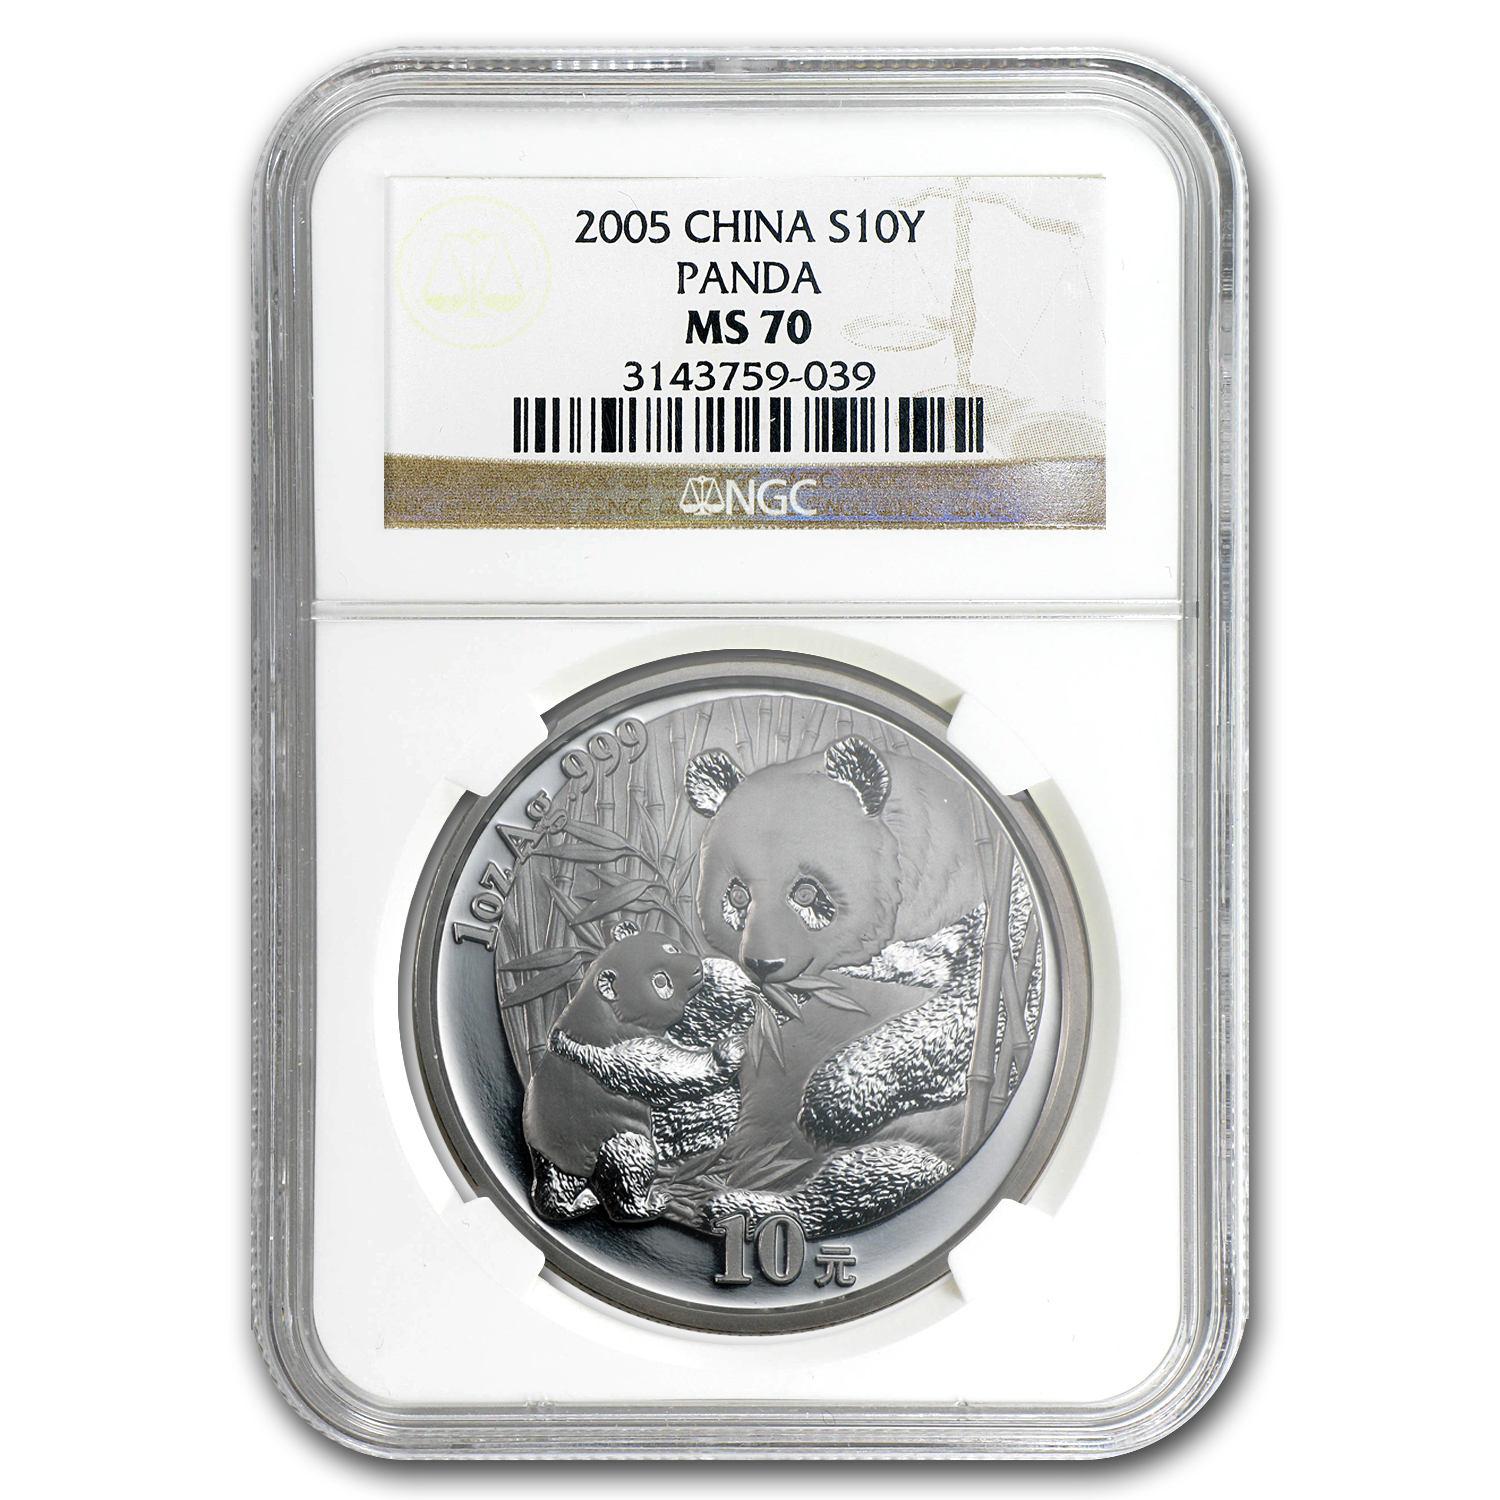 2005 China 1 oz Silver Panda MS-70 NGC